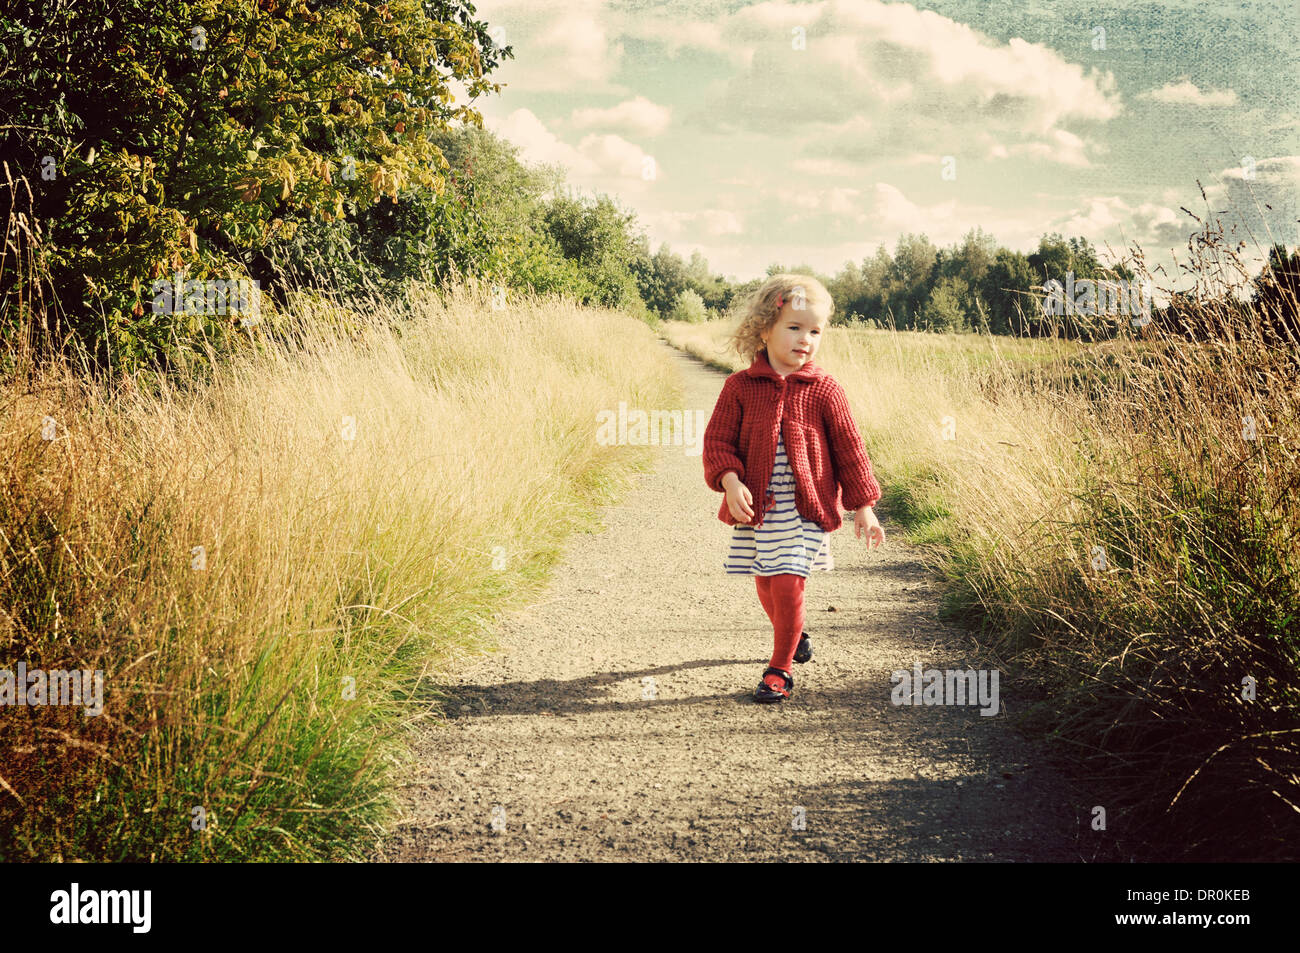 Little girl walking along path in countryside. - Stock Image